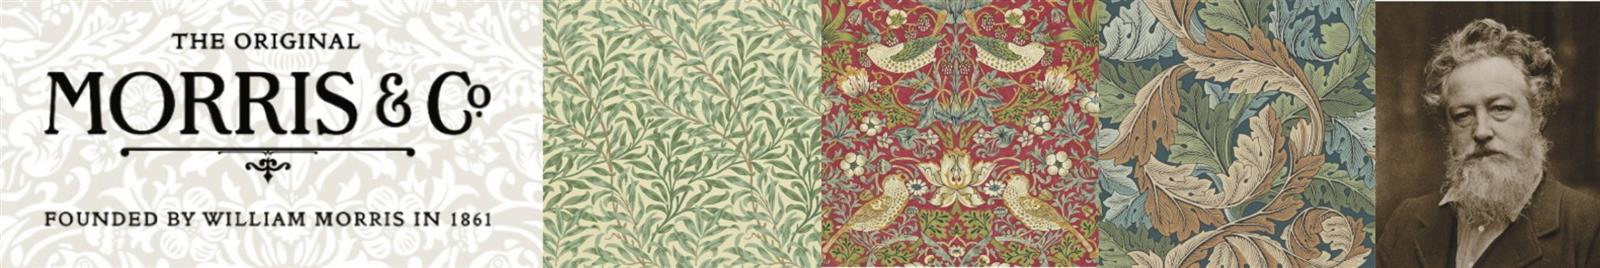 Morris and Co Wallpaper-Pimpernal